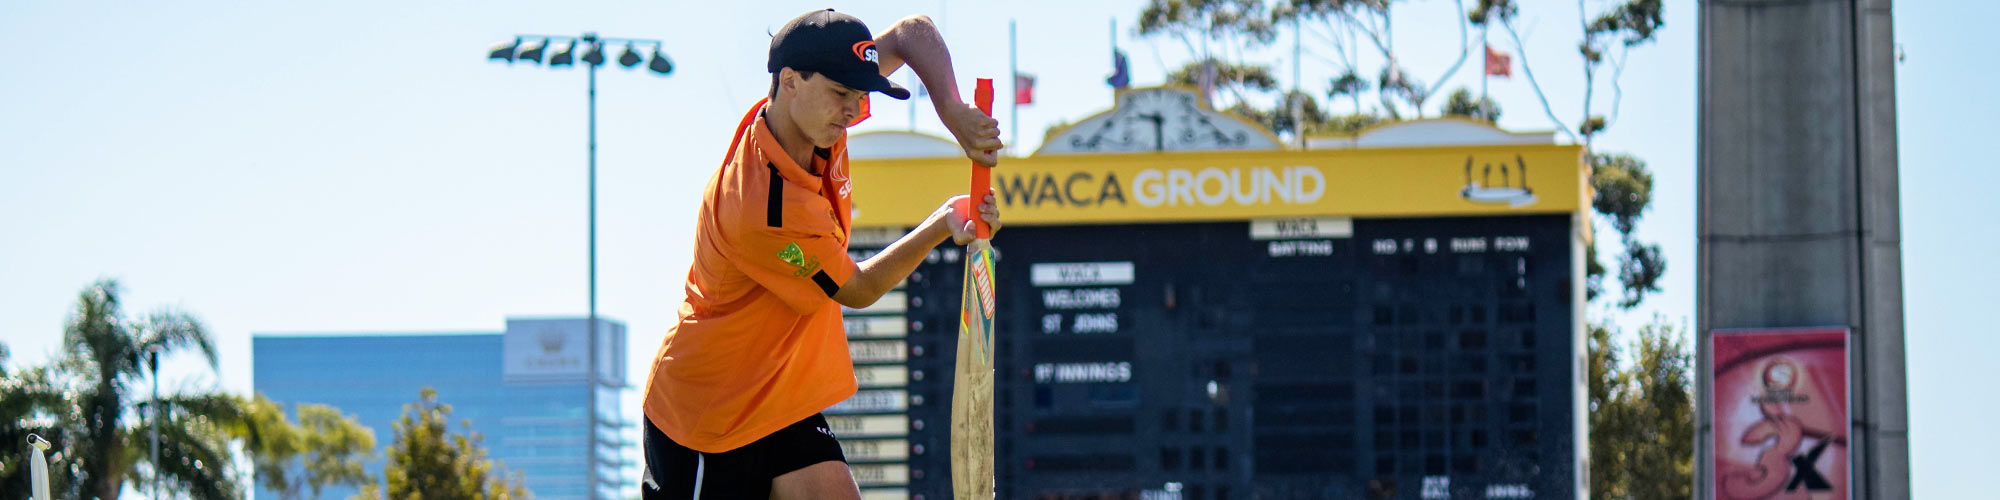 Cricket Australia students Perth Scorchers at WACA